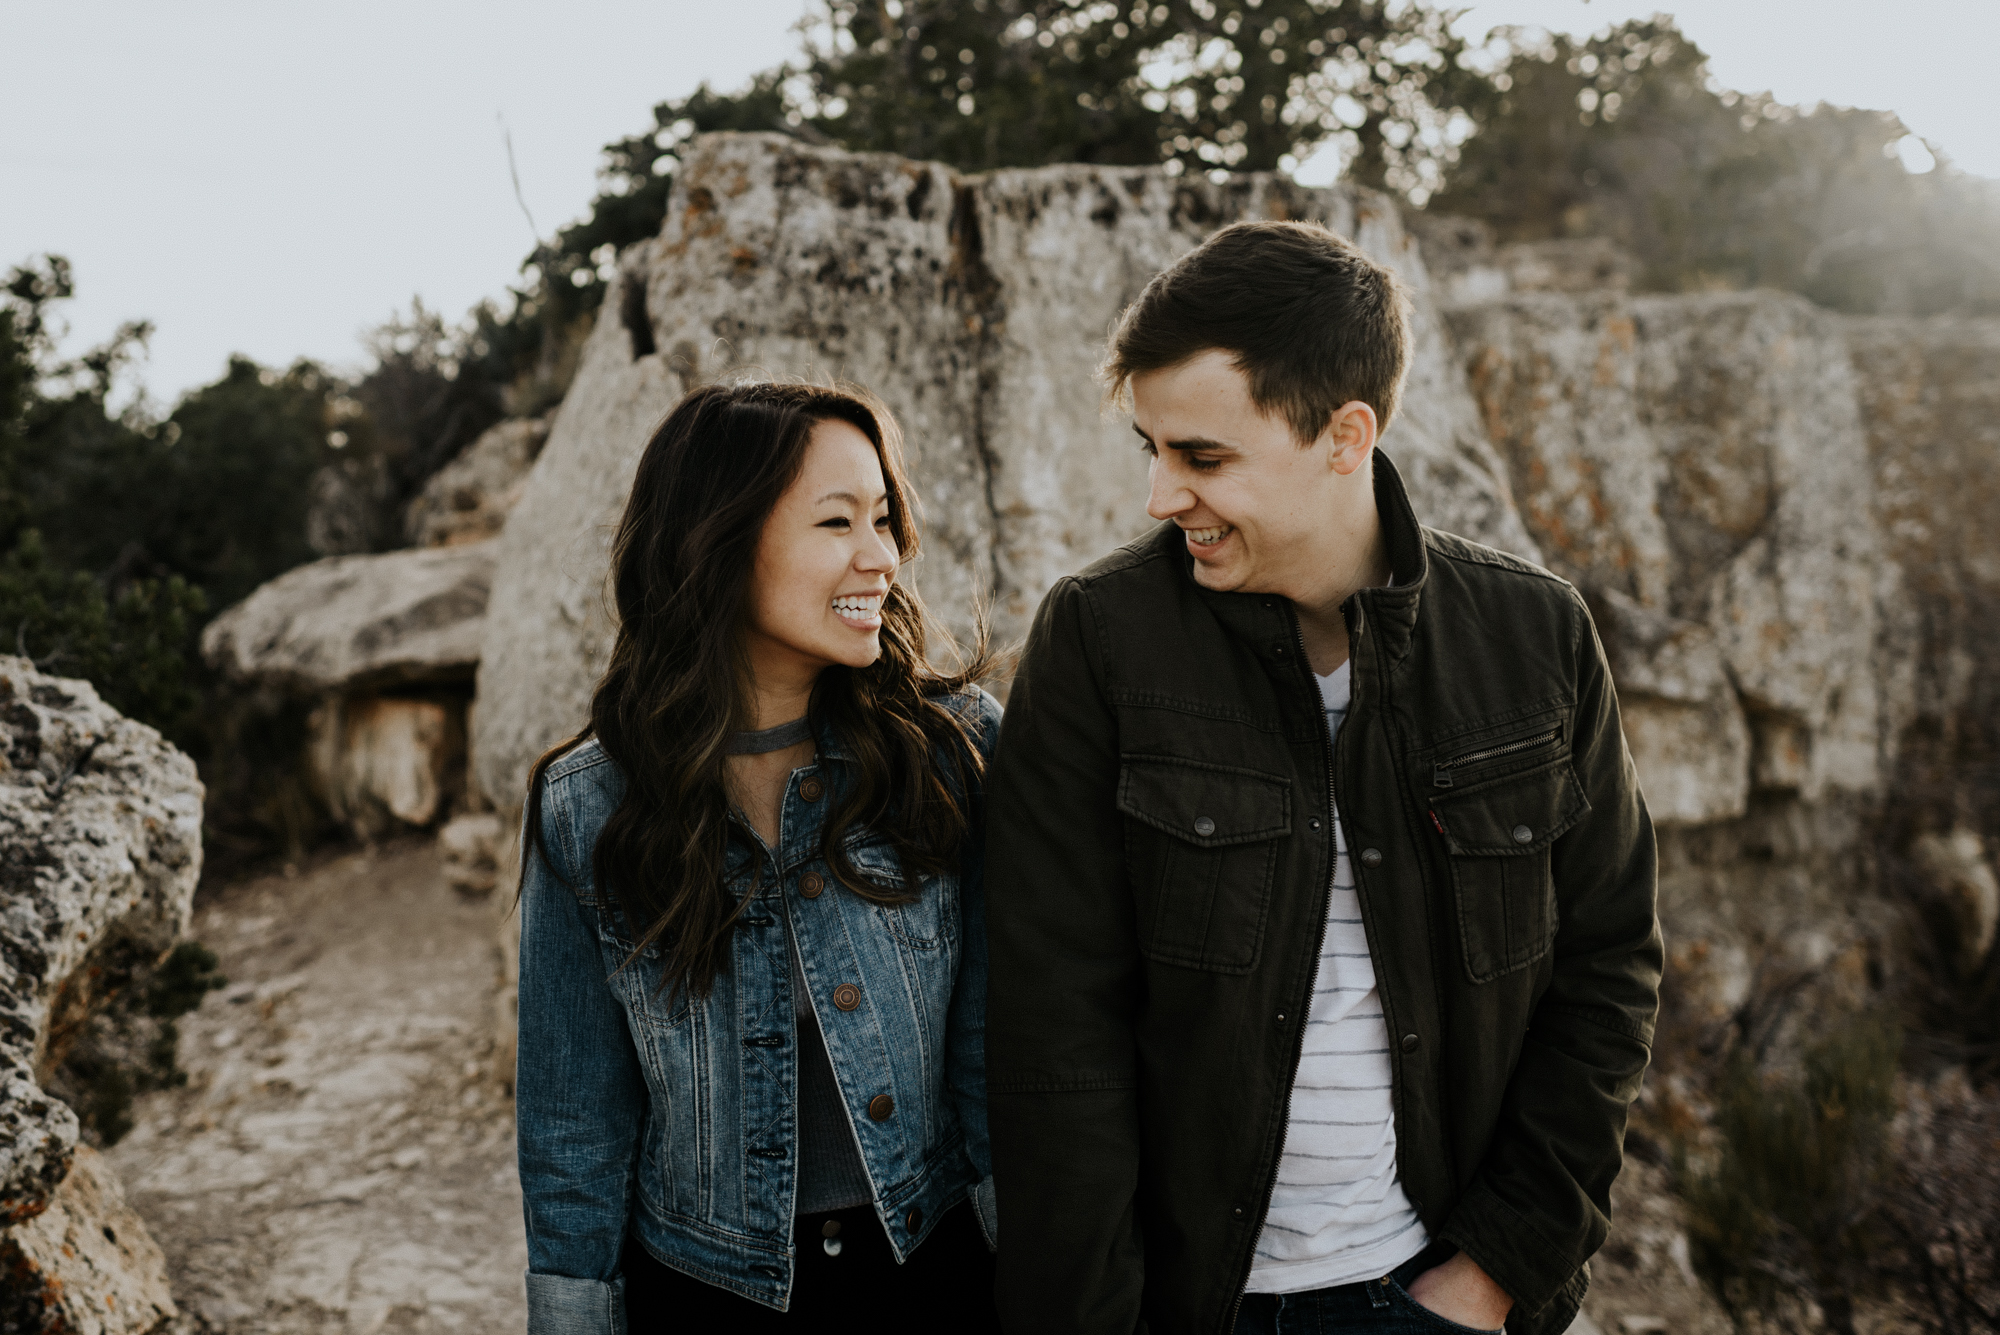 Couples Adventure Photography, Adventure Engagement Session at Grand Canyon National Park